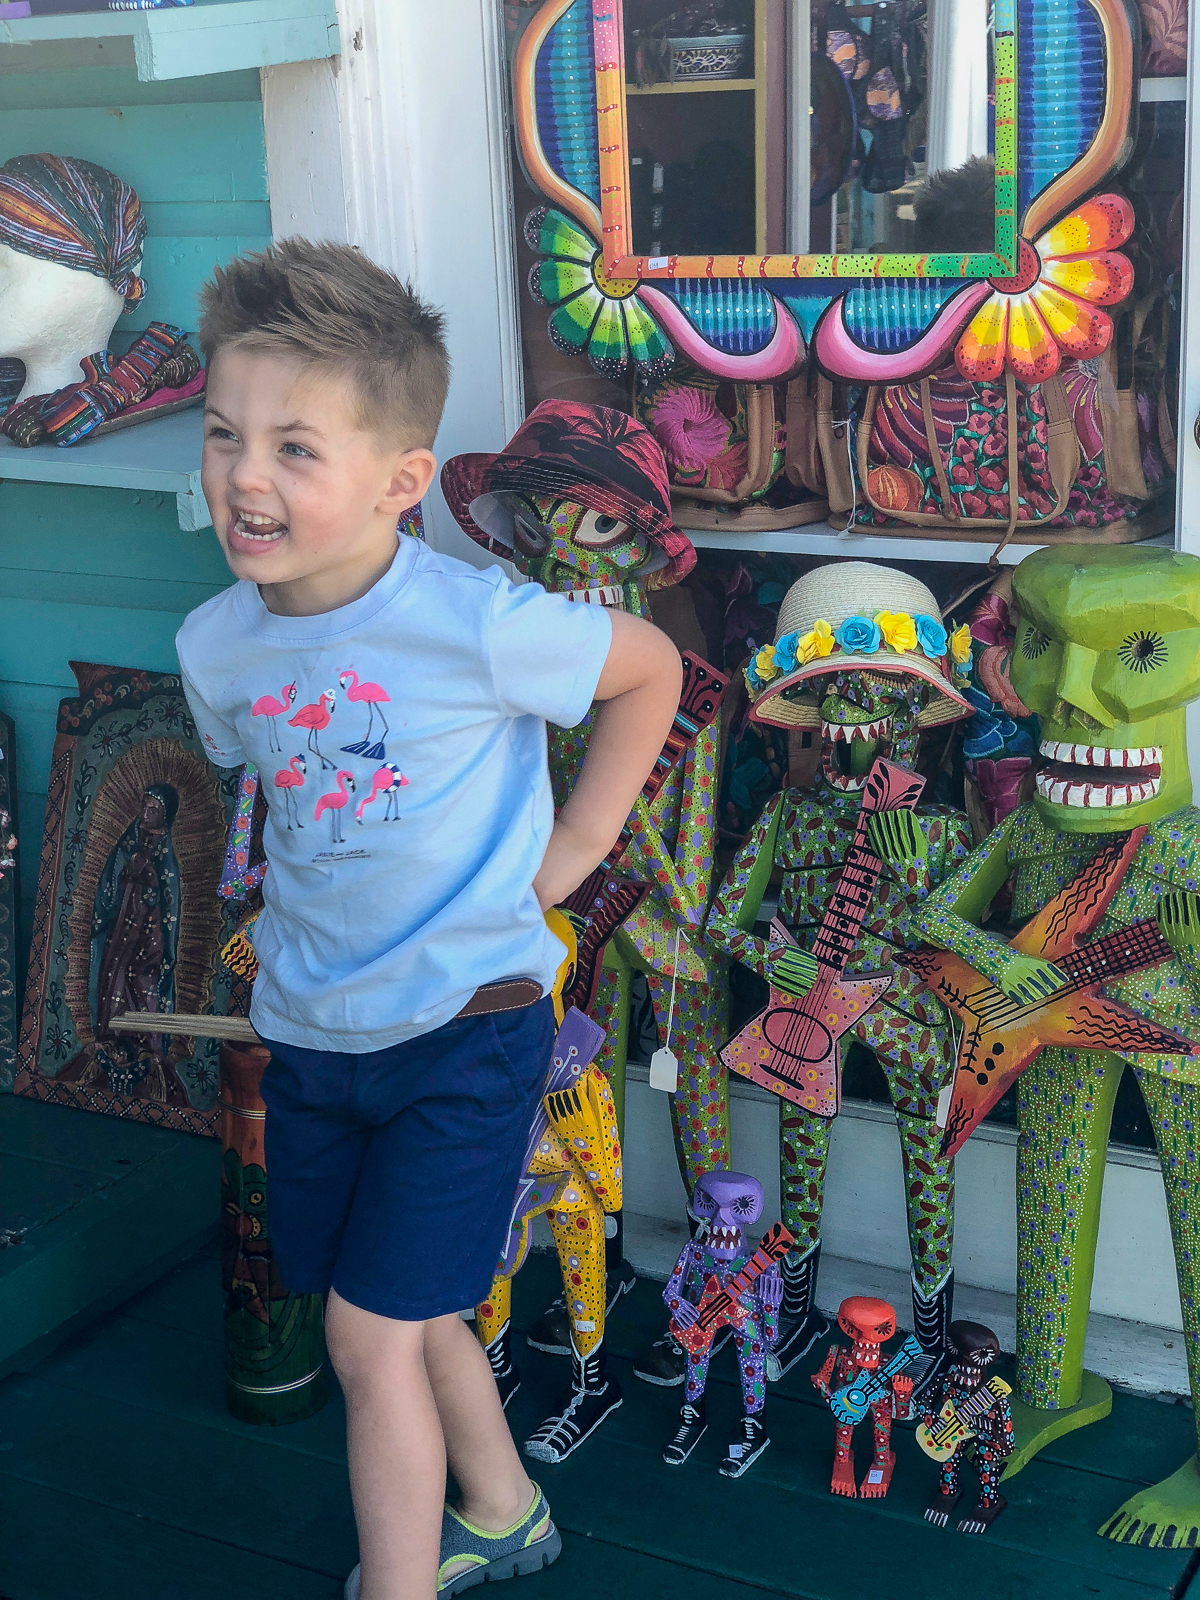 Key West - Things to Do in Key West - Misty Nelson, family travel blogger @frostedevents travel with kids